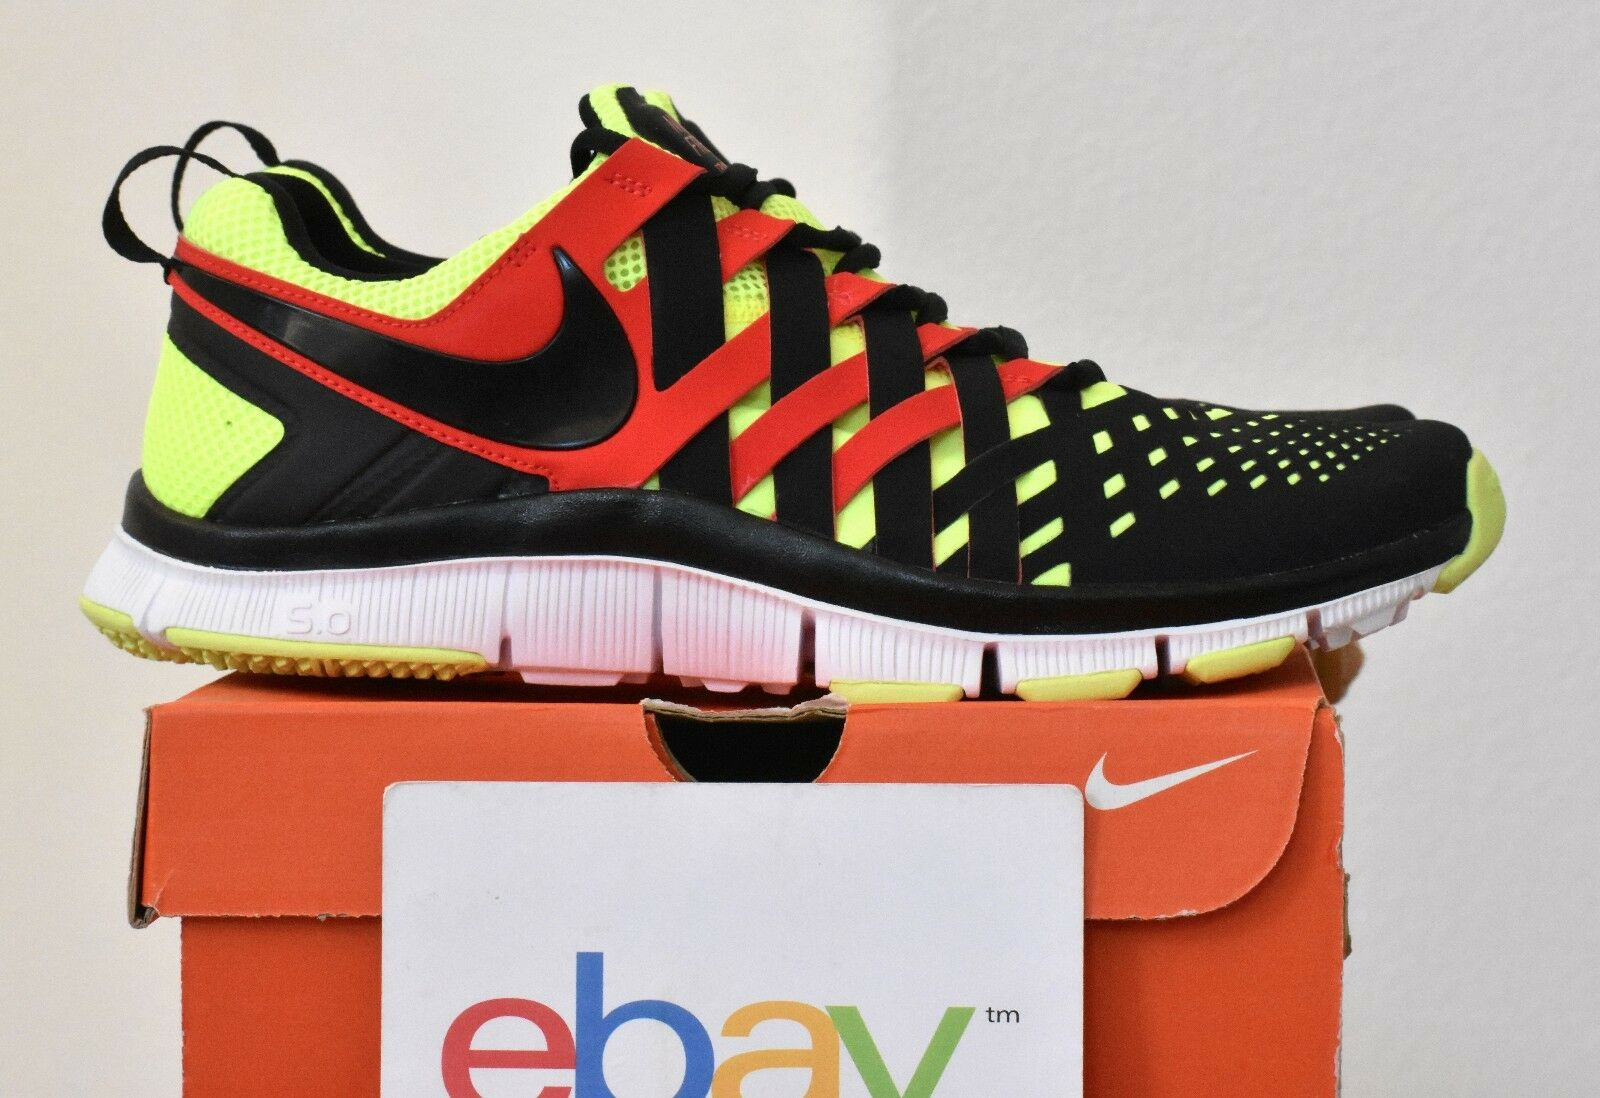 New Mens Nike Free Trainer 5.0 V4 VOLT CRIMSON Sizes 10.5-12.5 black red 076 tr